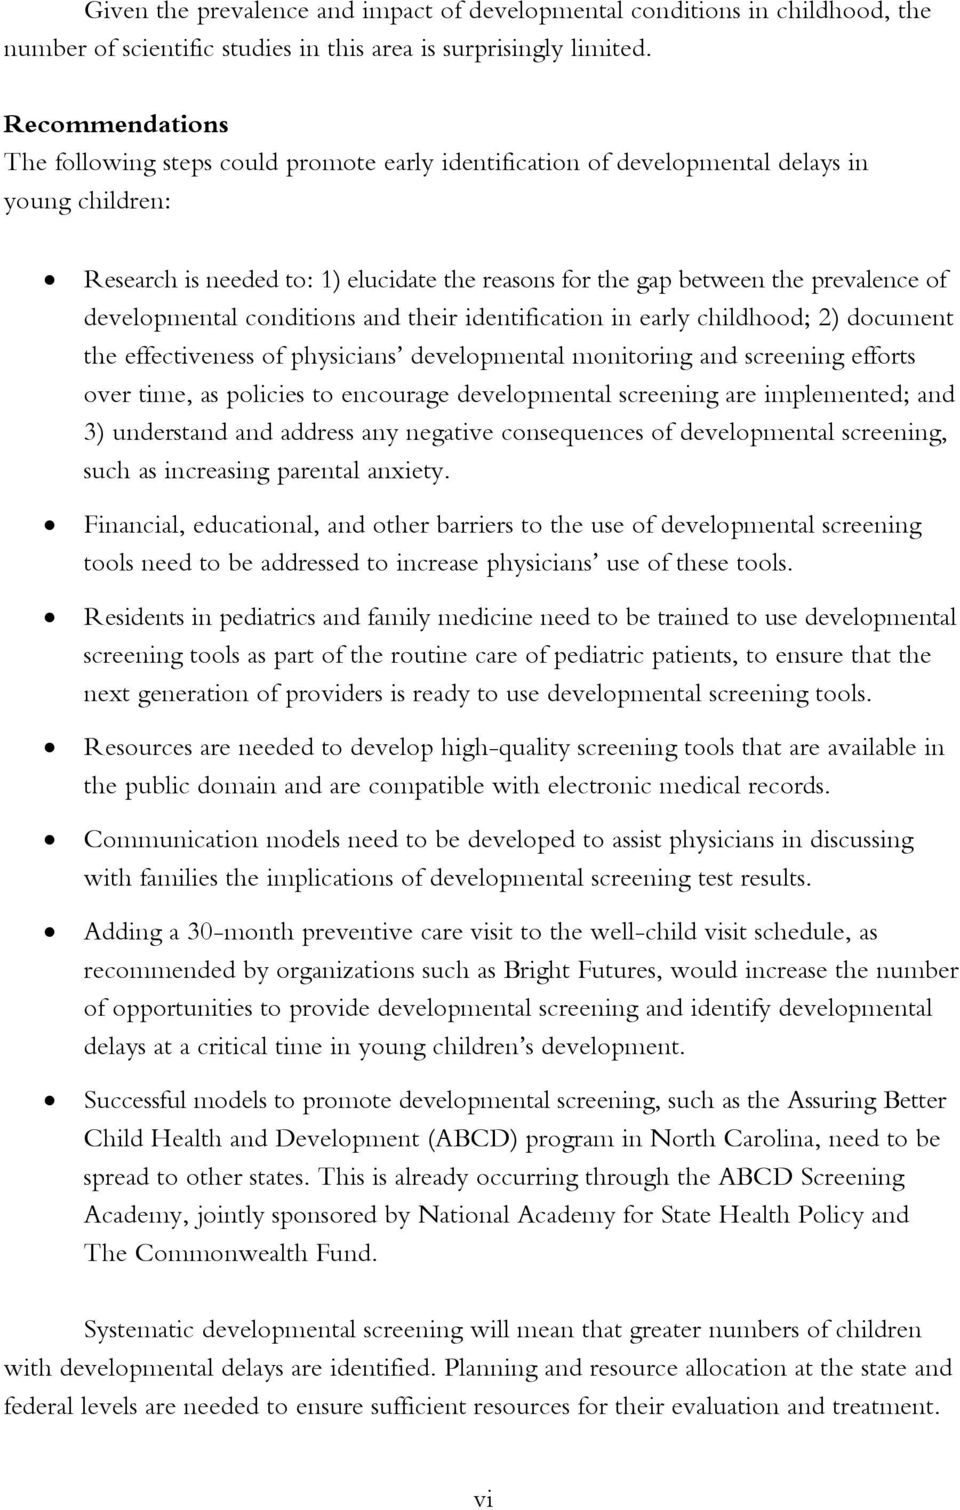 developmental conditions and their identification in early childhood; 2) document the effectiveness of physicians developmental monitoring and screening efforts over time, as policies to encourage